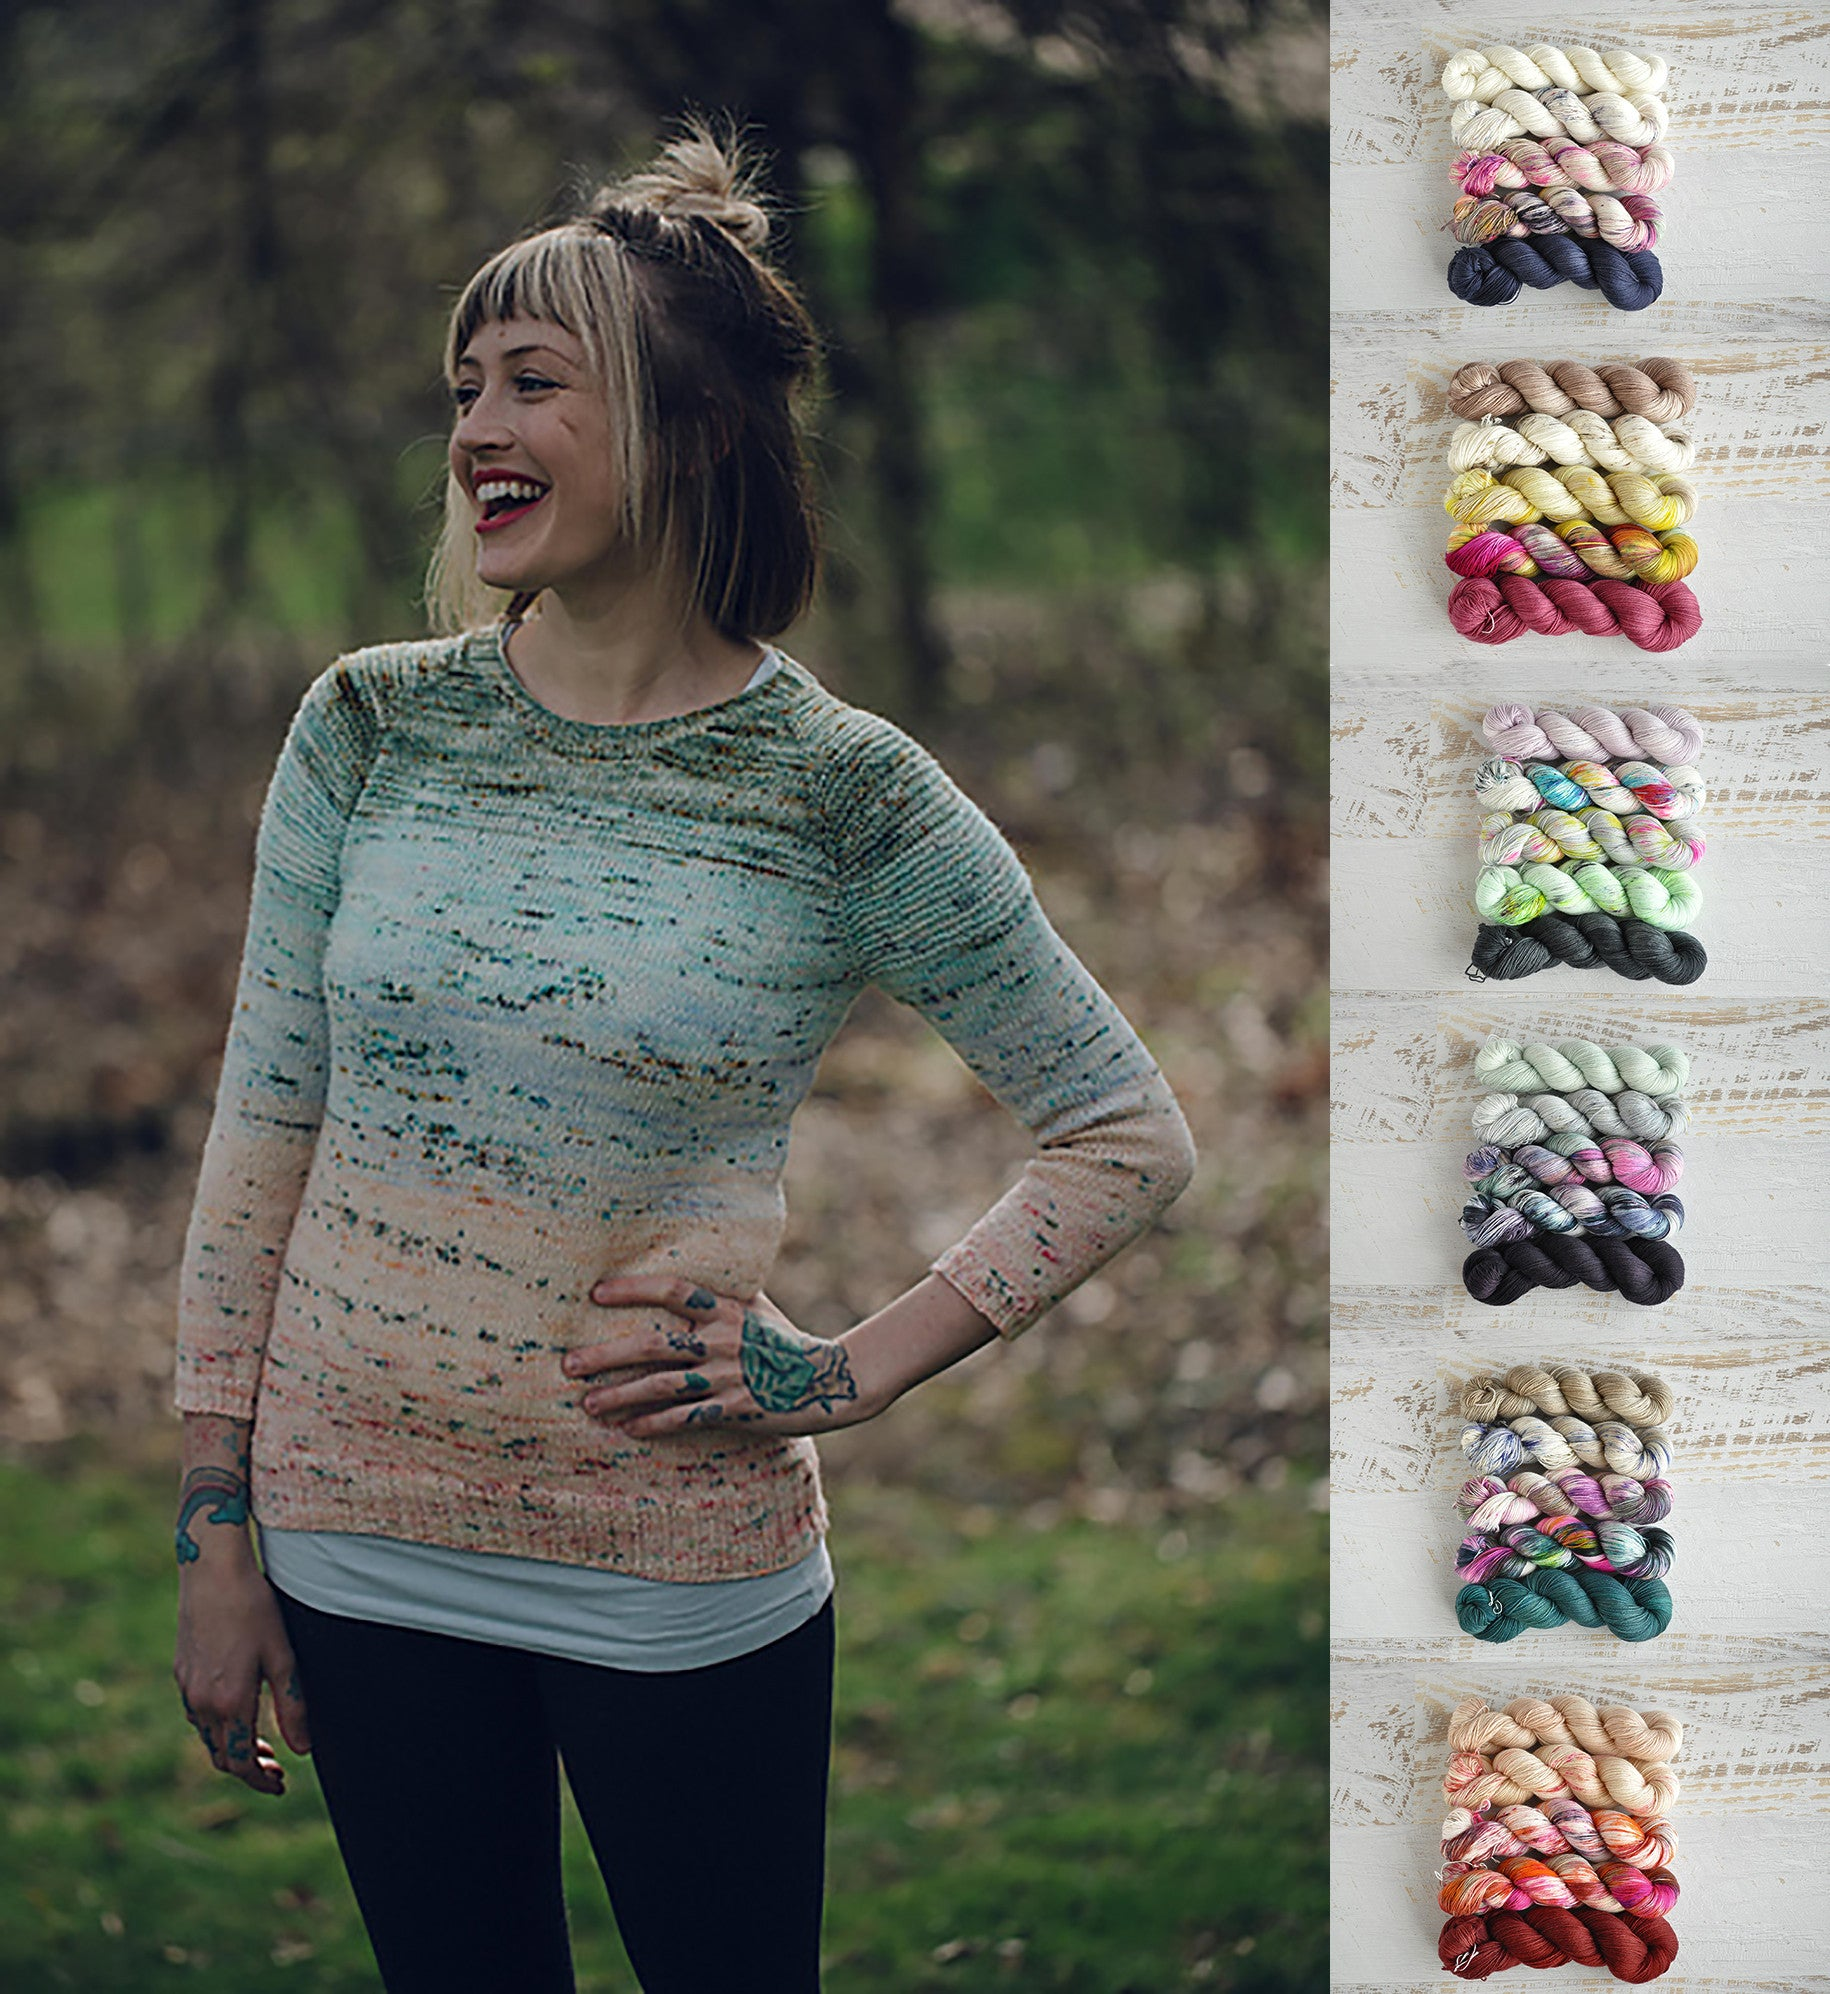 e059fb11a224af Pattern Crush - So Faded by Andrea Mowry - Skein